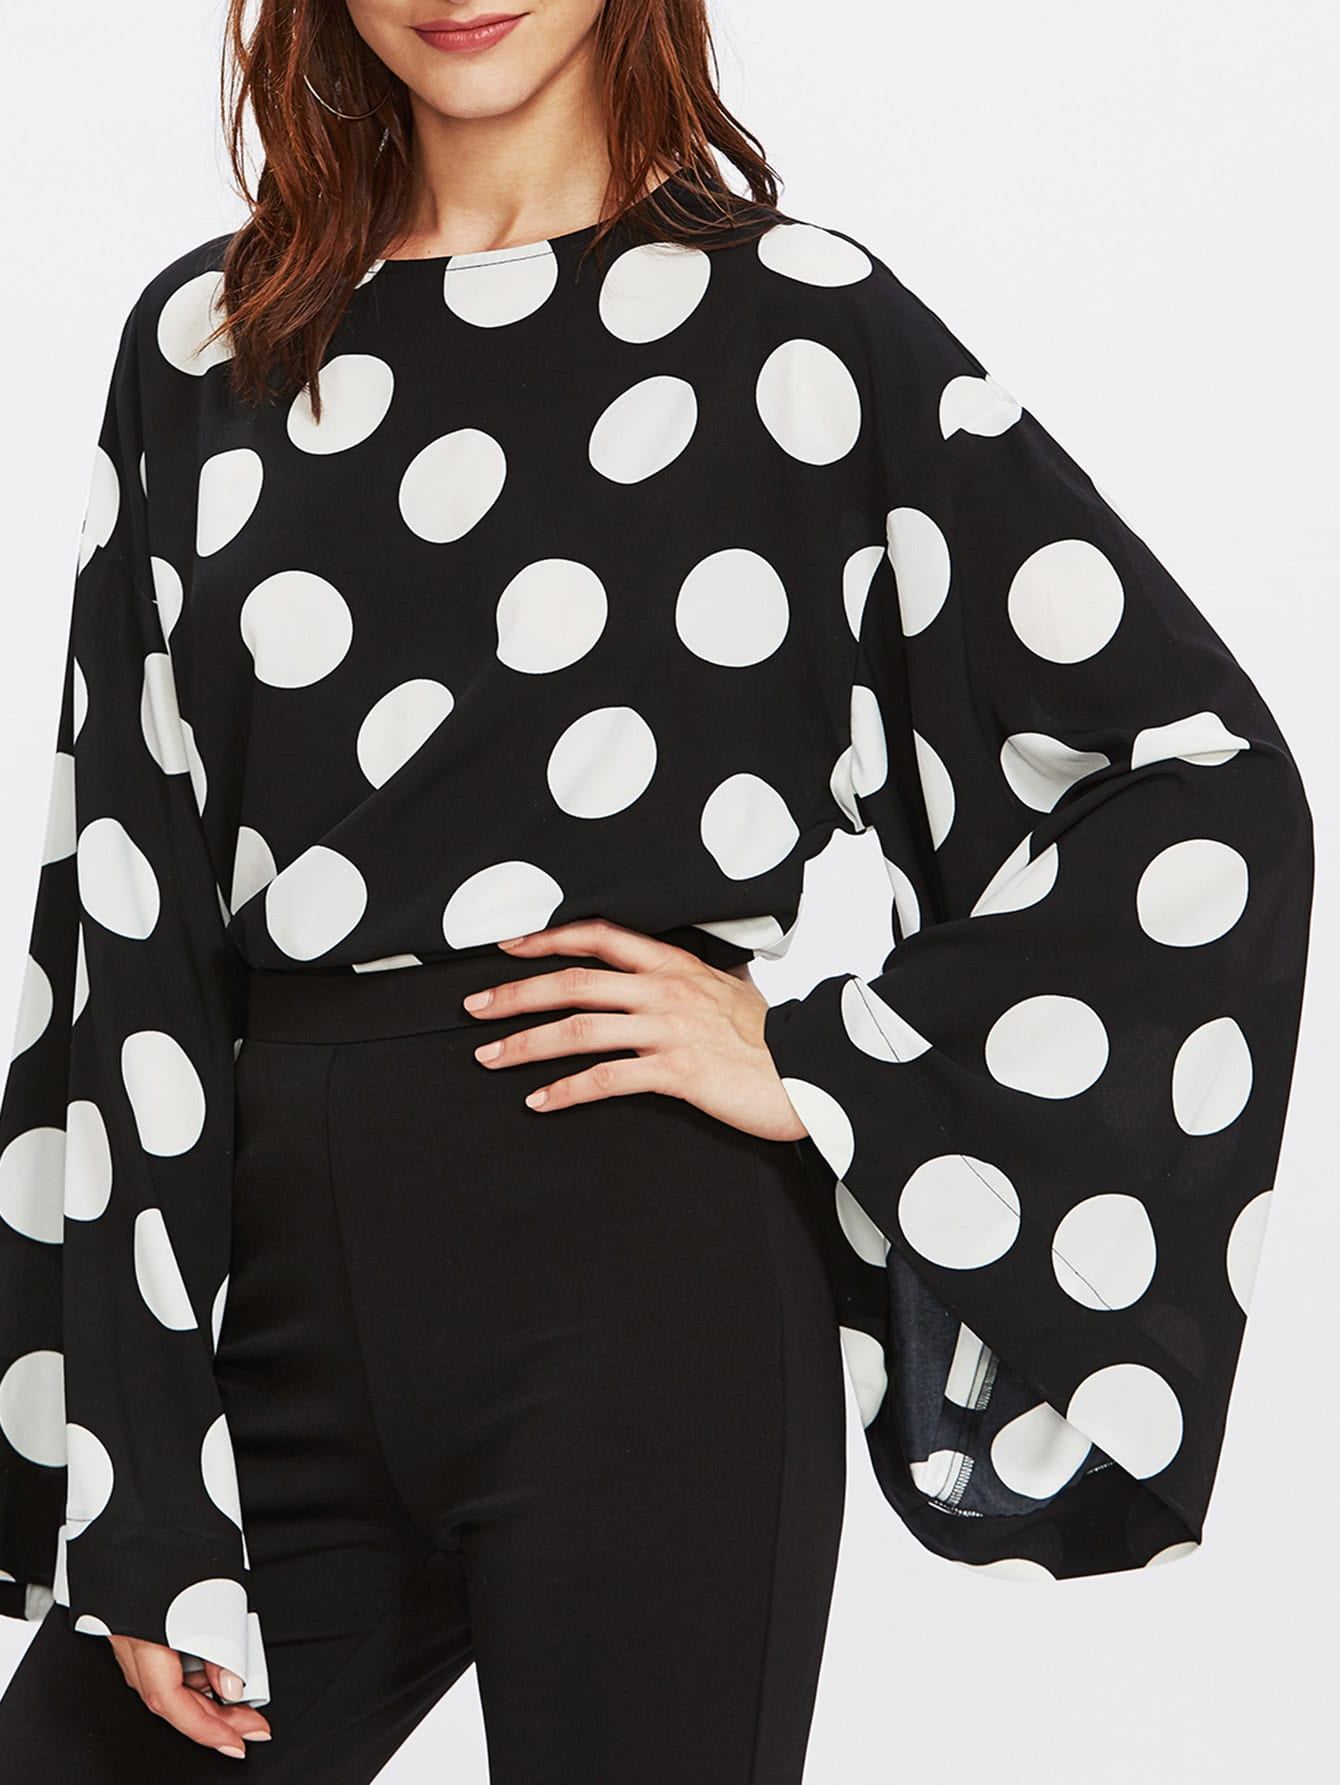 Exaggerated Trumpet Sleeve Keyhole Back Polka Dot Top exaggerated mask brooch